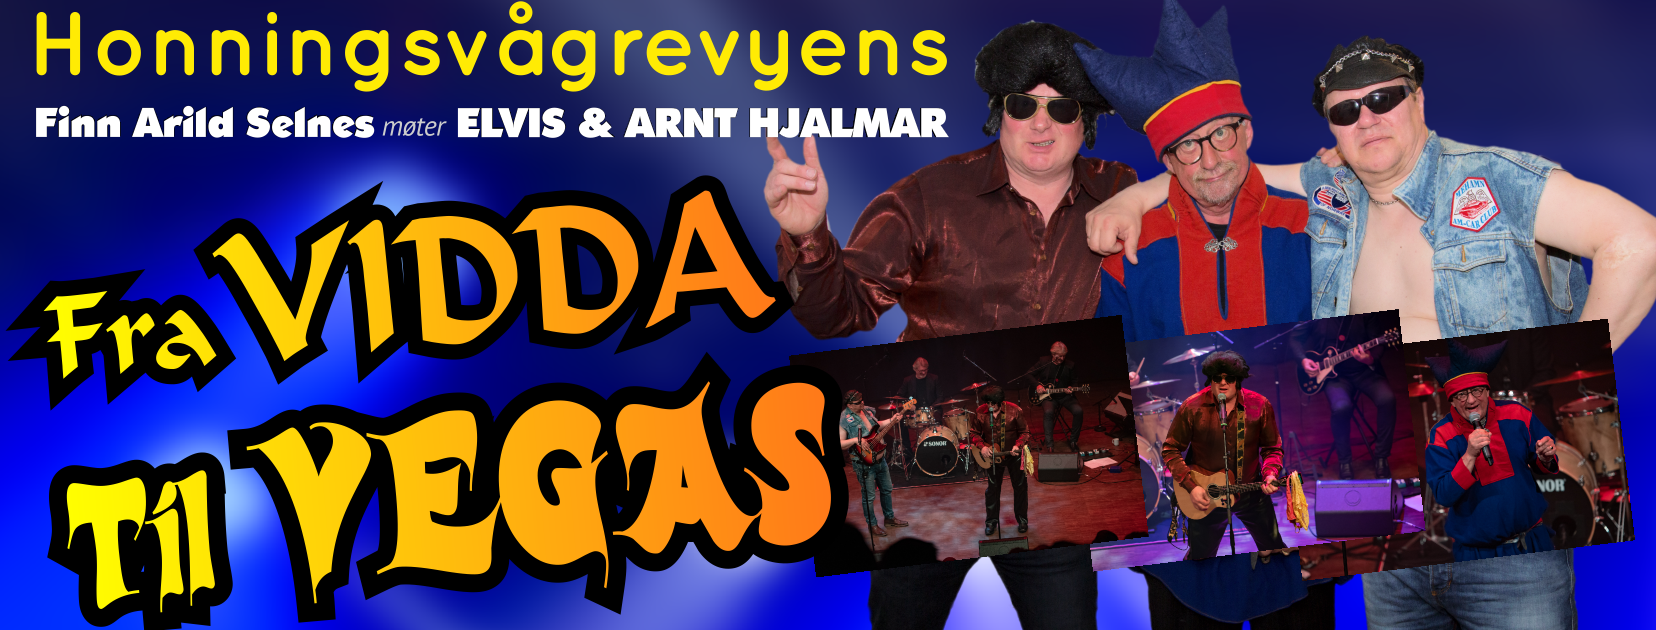 facebook_page_cover.png